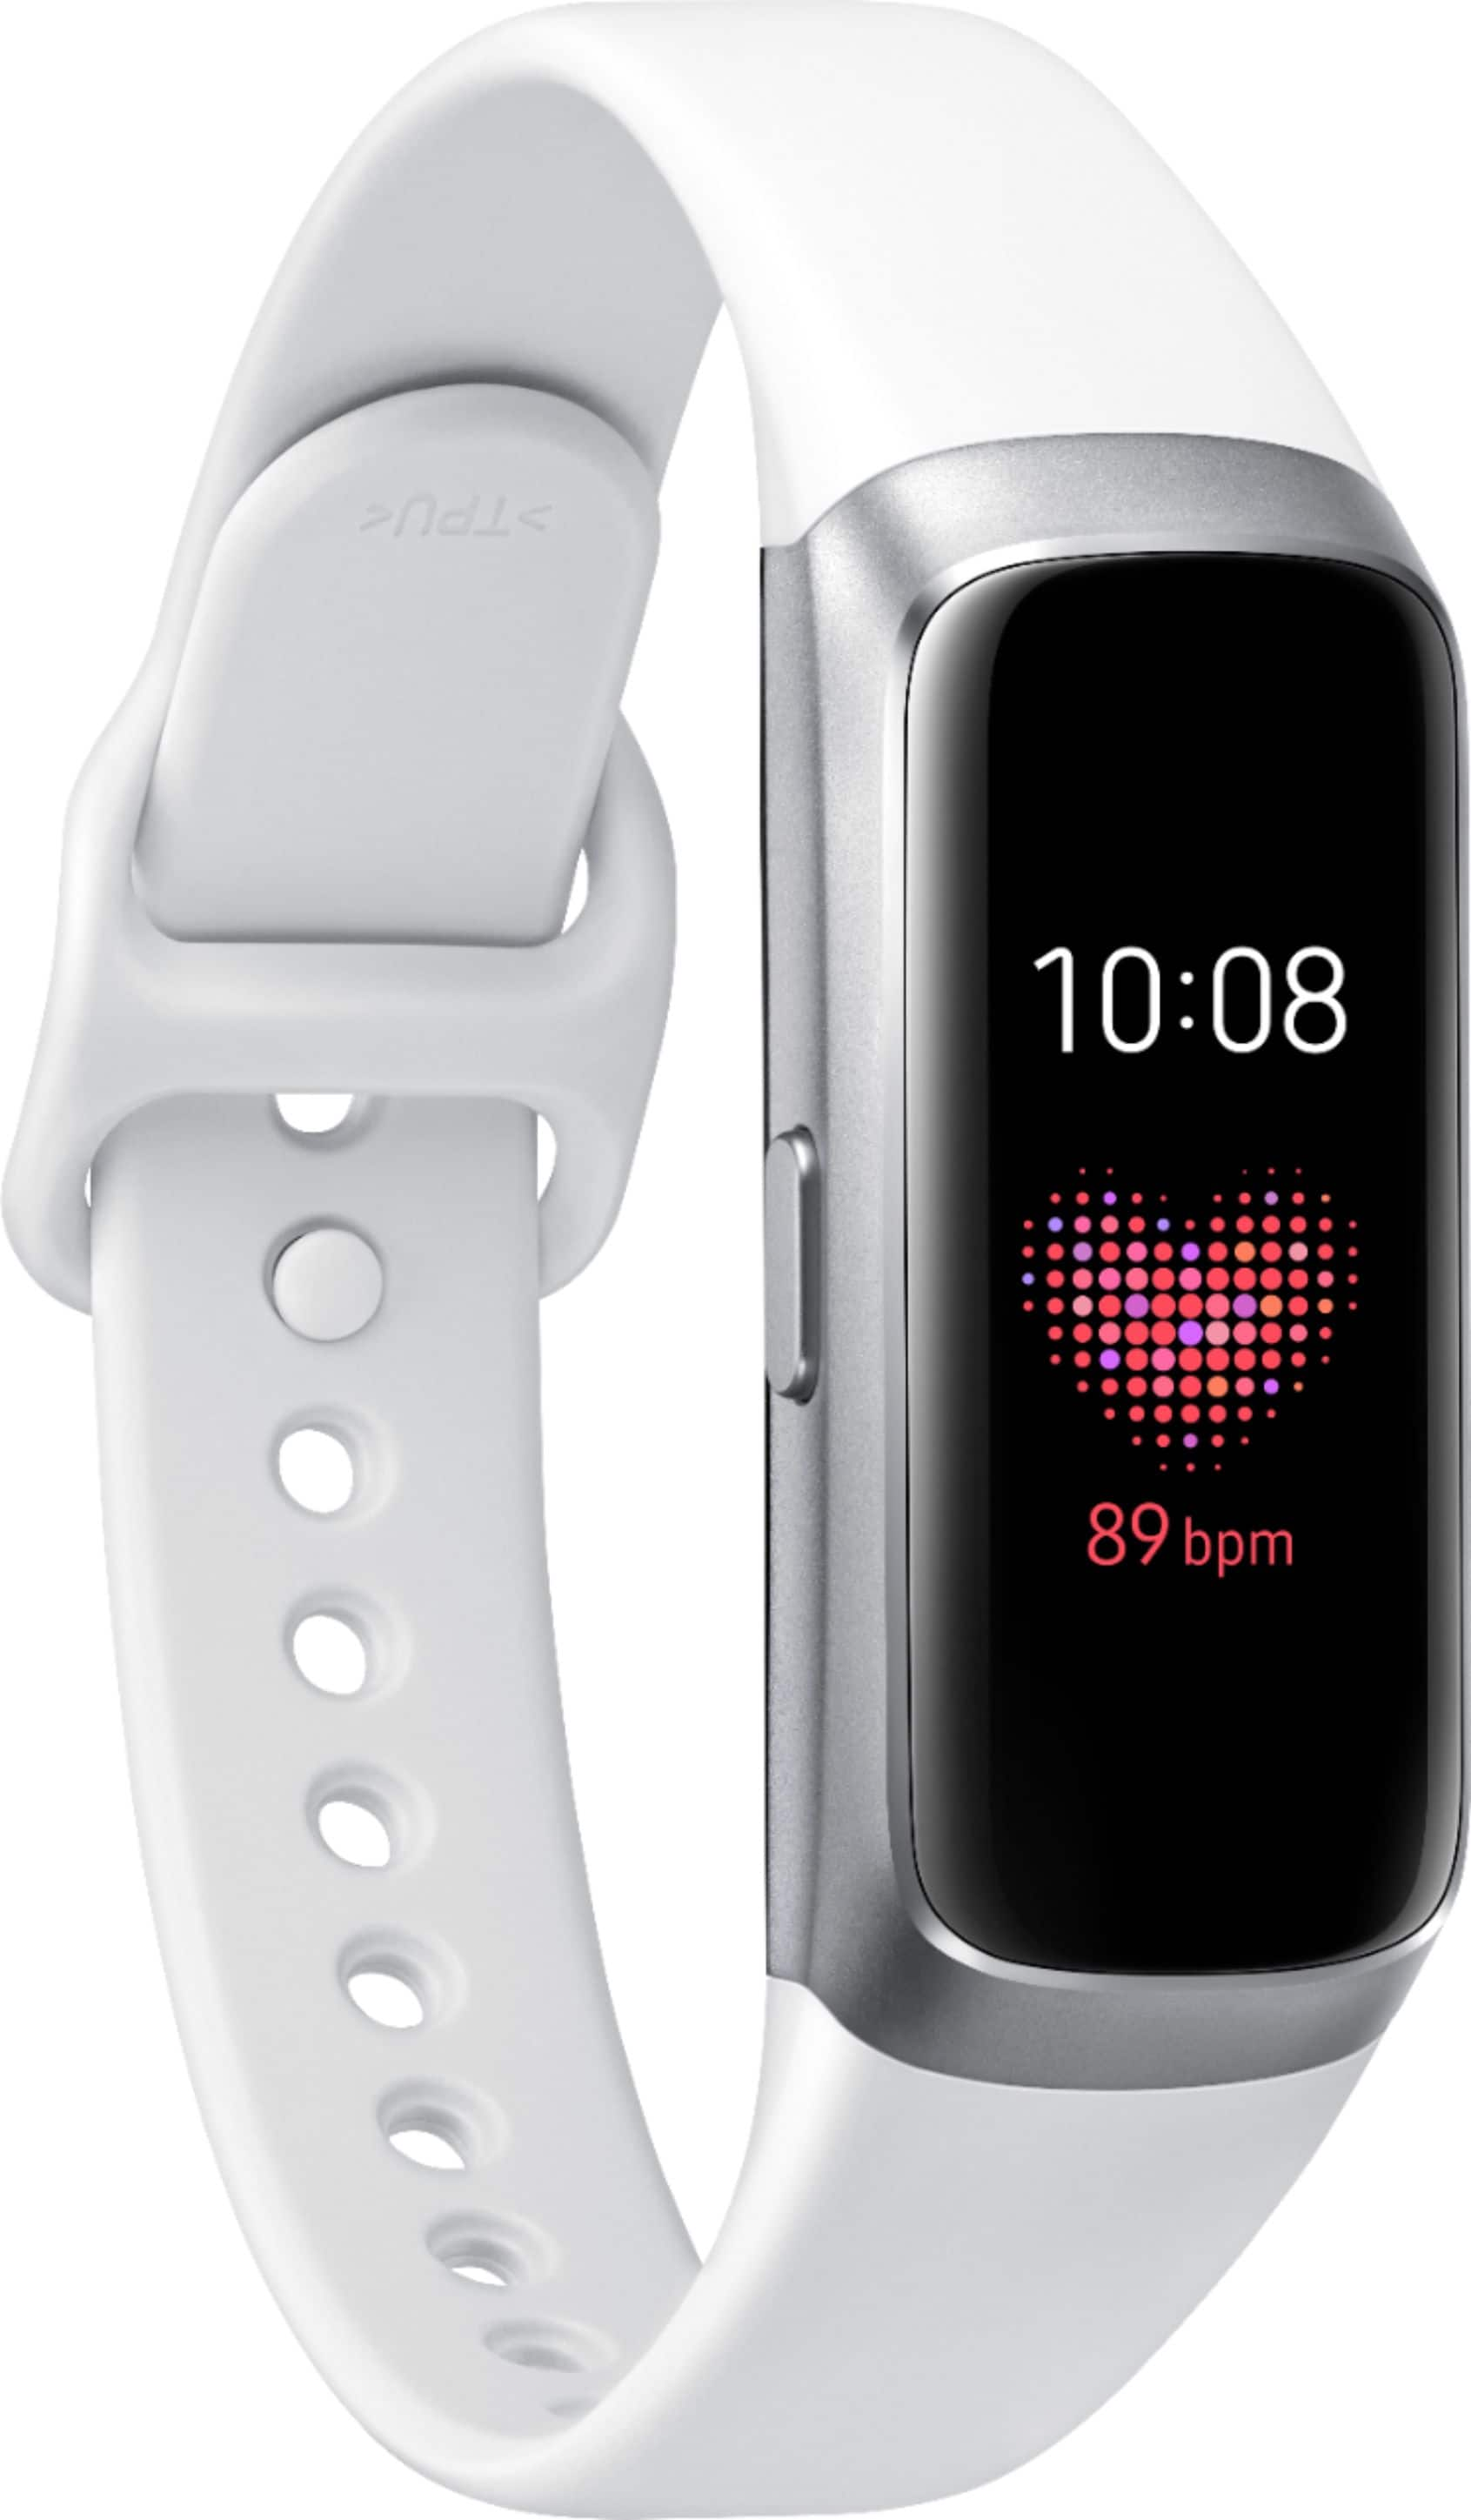 Samsung - Galaxy Fit Activity Tracker + Heart Rate $50